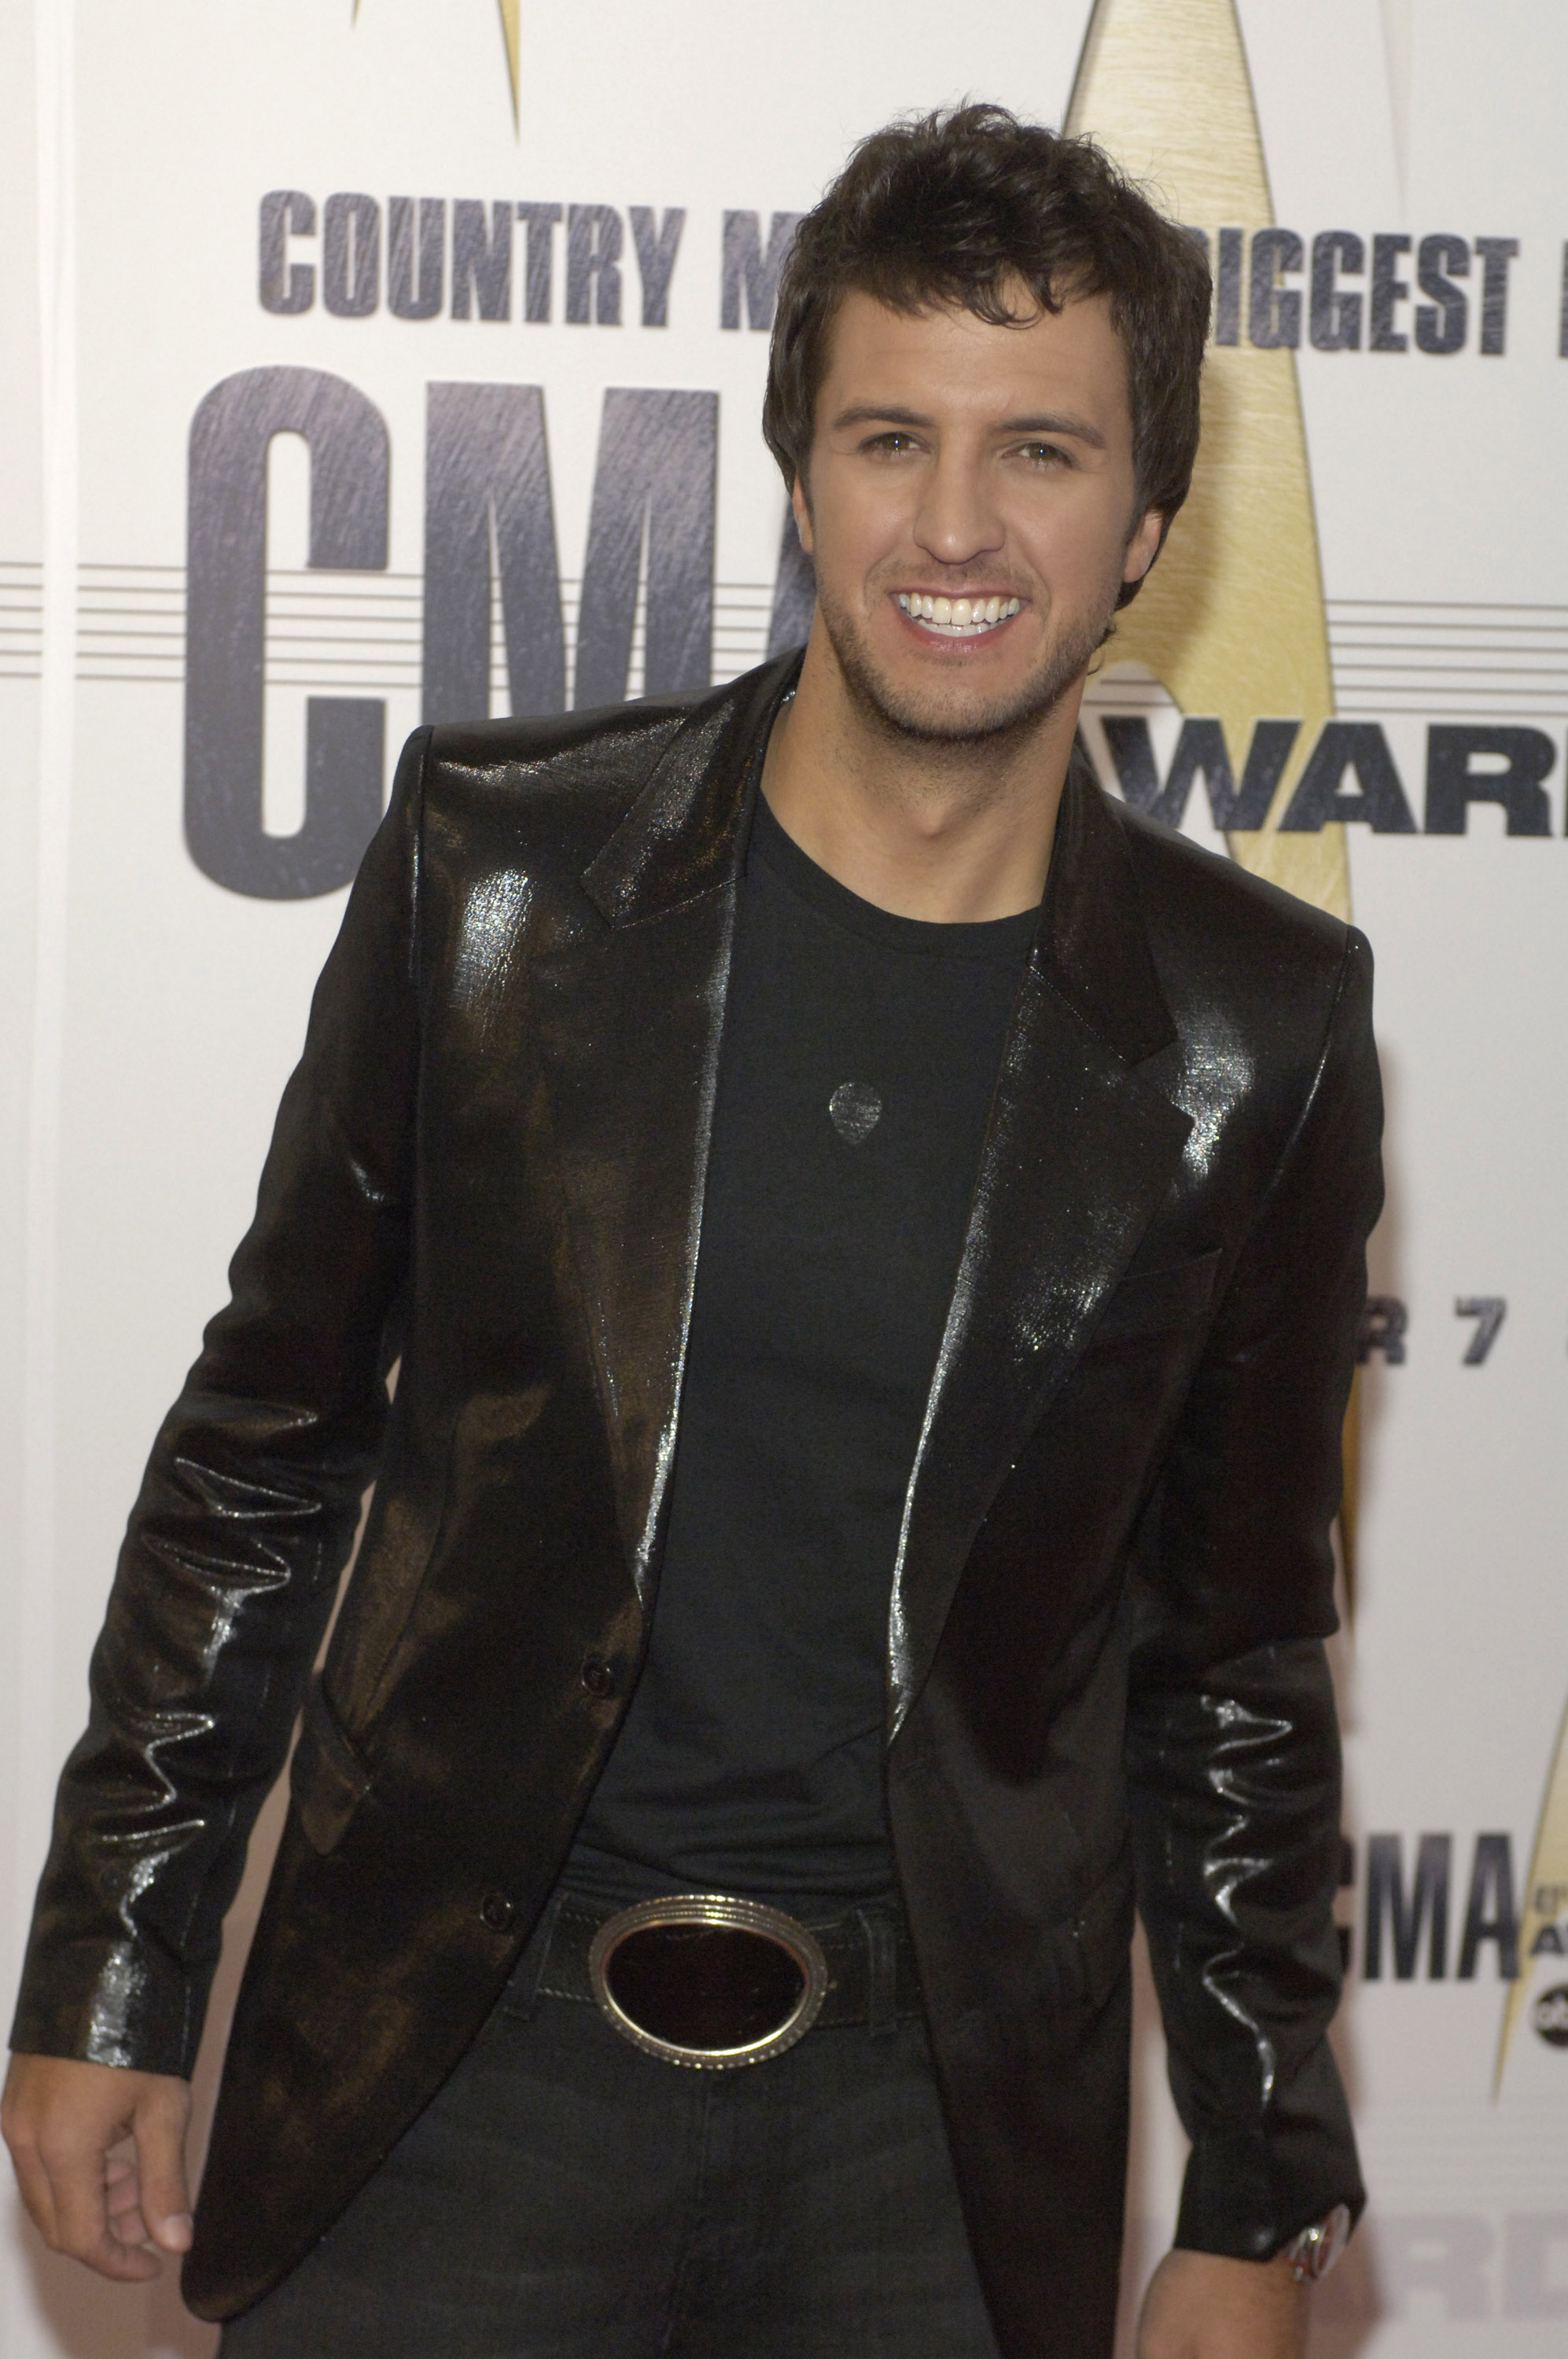 Luke Bryan arrives at the 41st Annual CMA Awards at the Sommet Center on November 7, 2007 in Nashville TN; Photo by Frank Mullen/WireImage